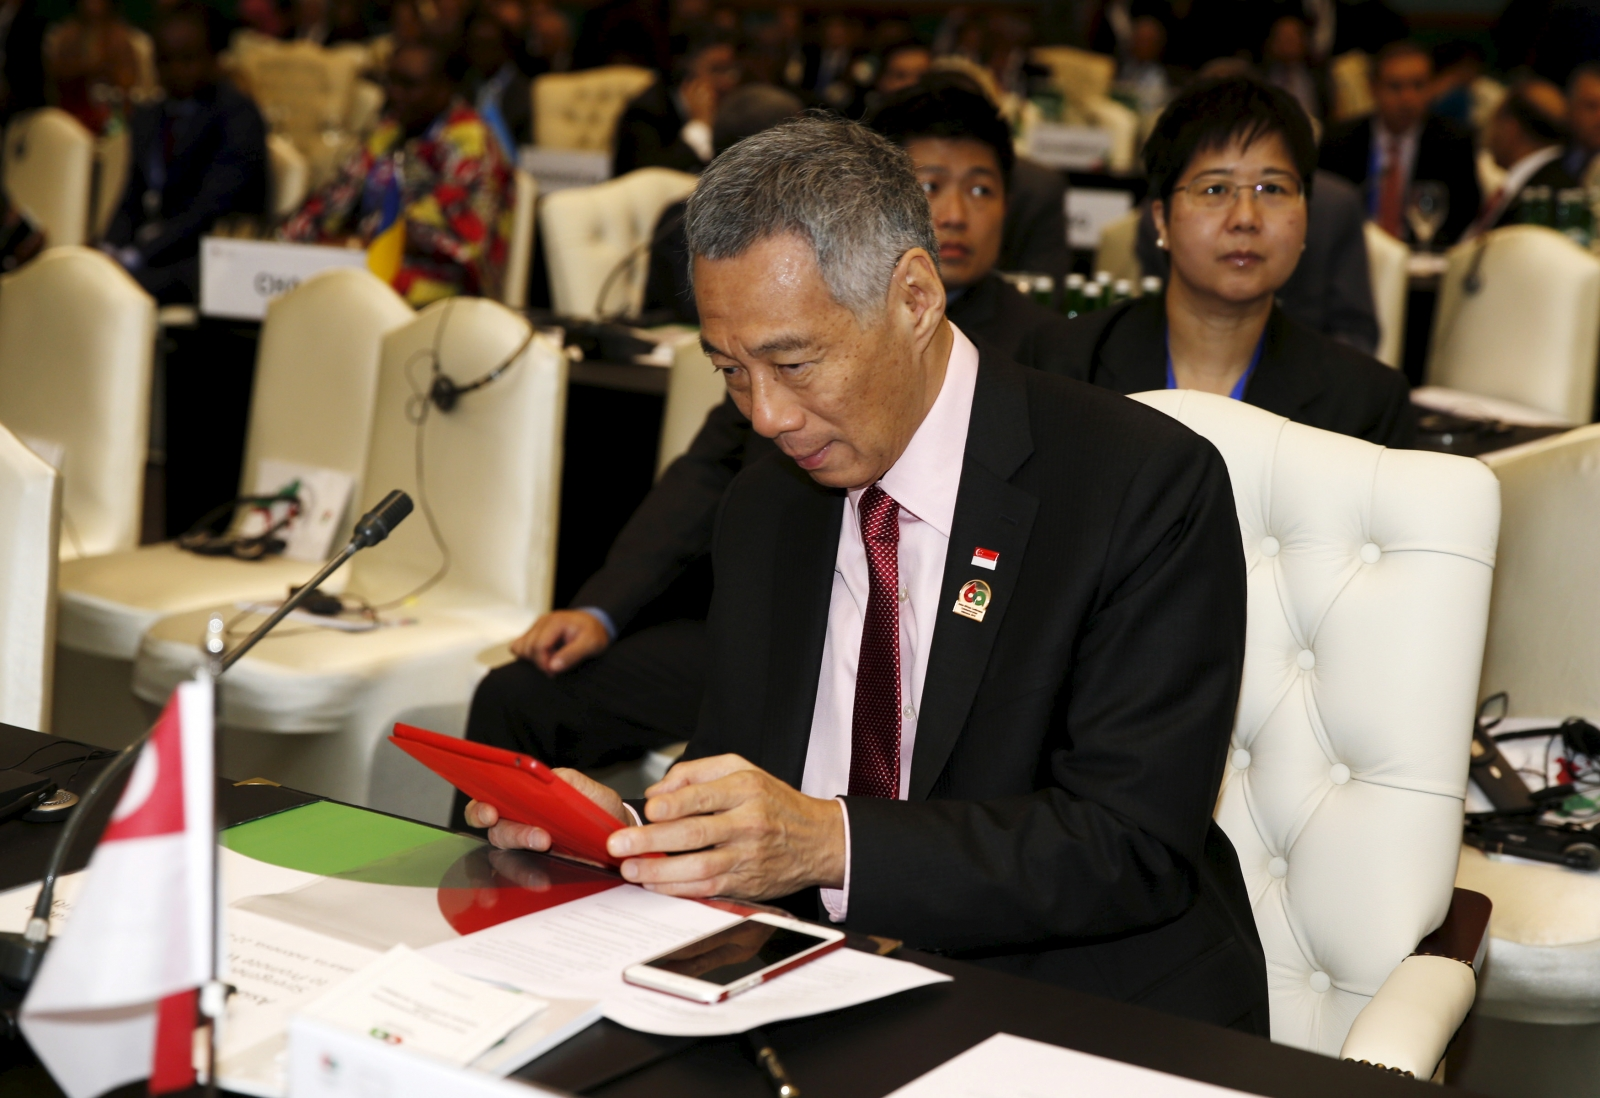 Lee Hsien Loong is tech savvy